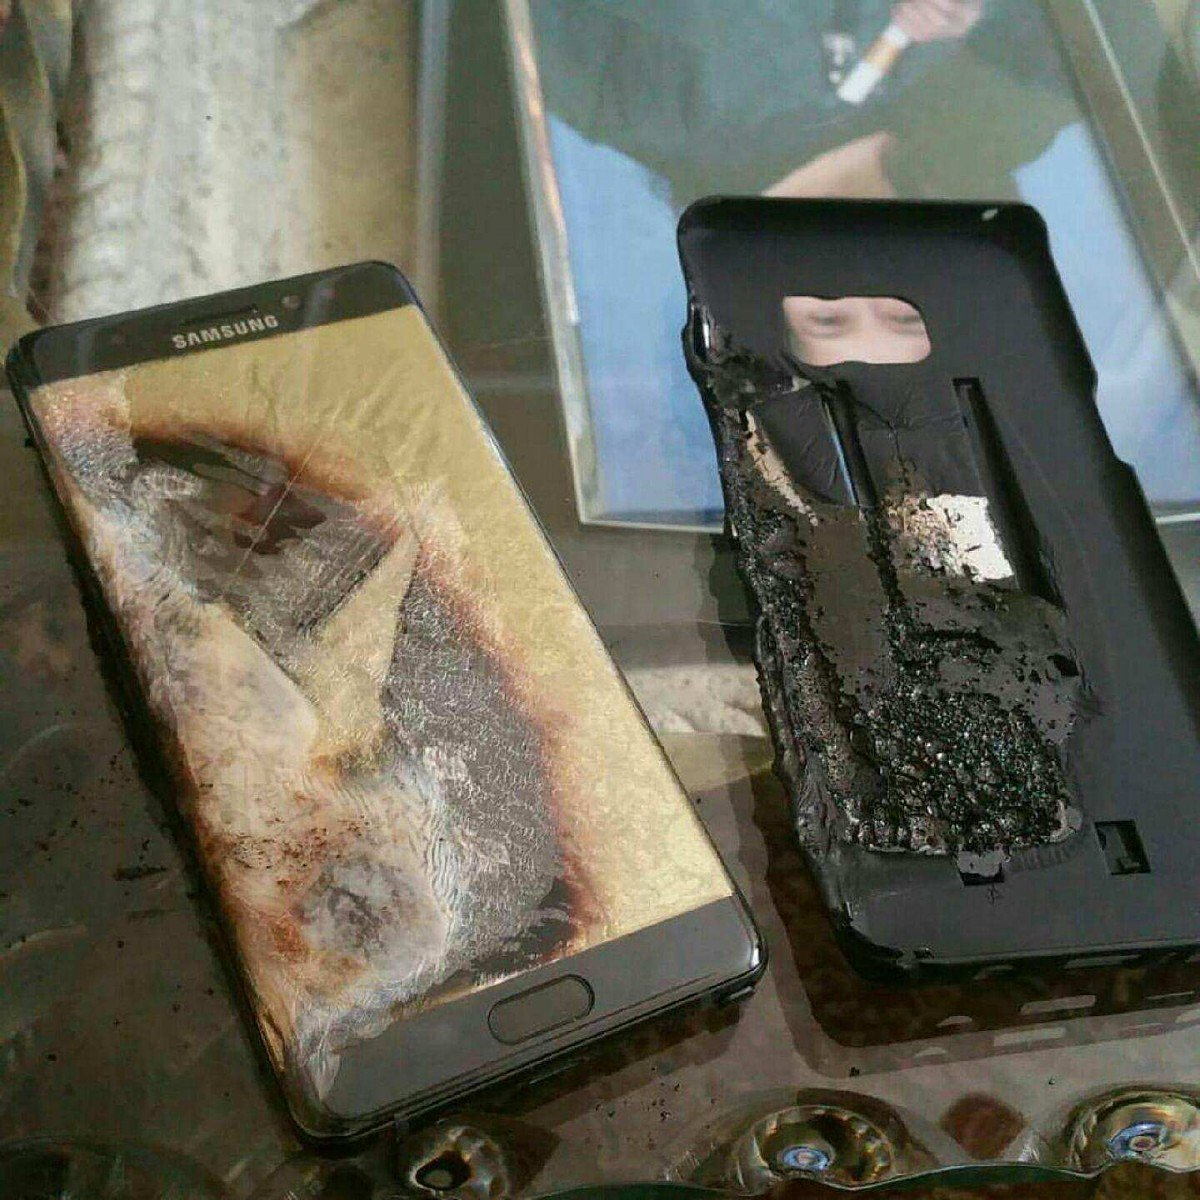 First US Note7 explosion confirms danger of North American devices. Read on at: https://t.co/GTRHMJwh61 https://t.co/OAHg72muu5